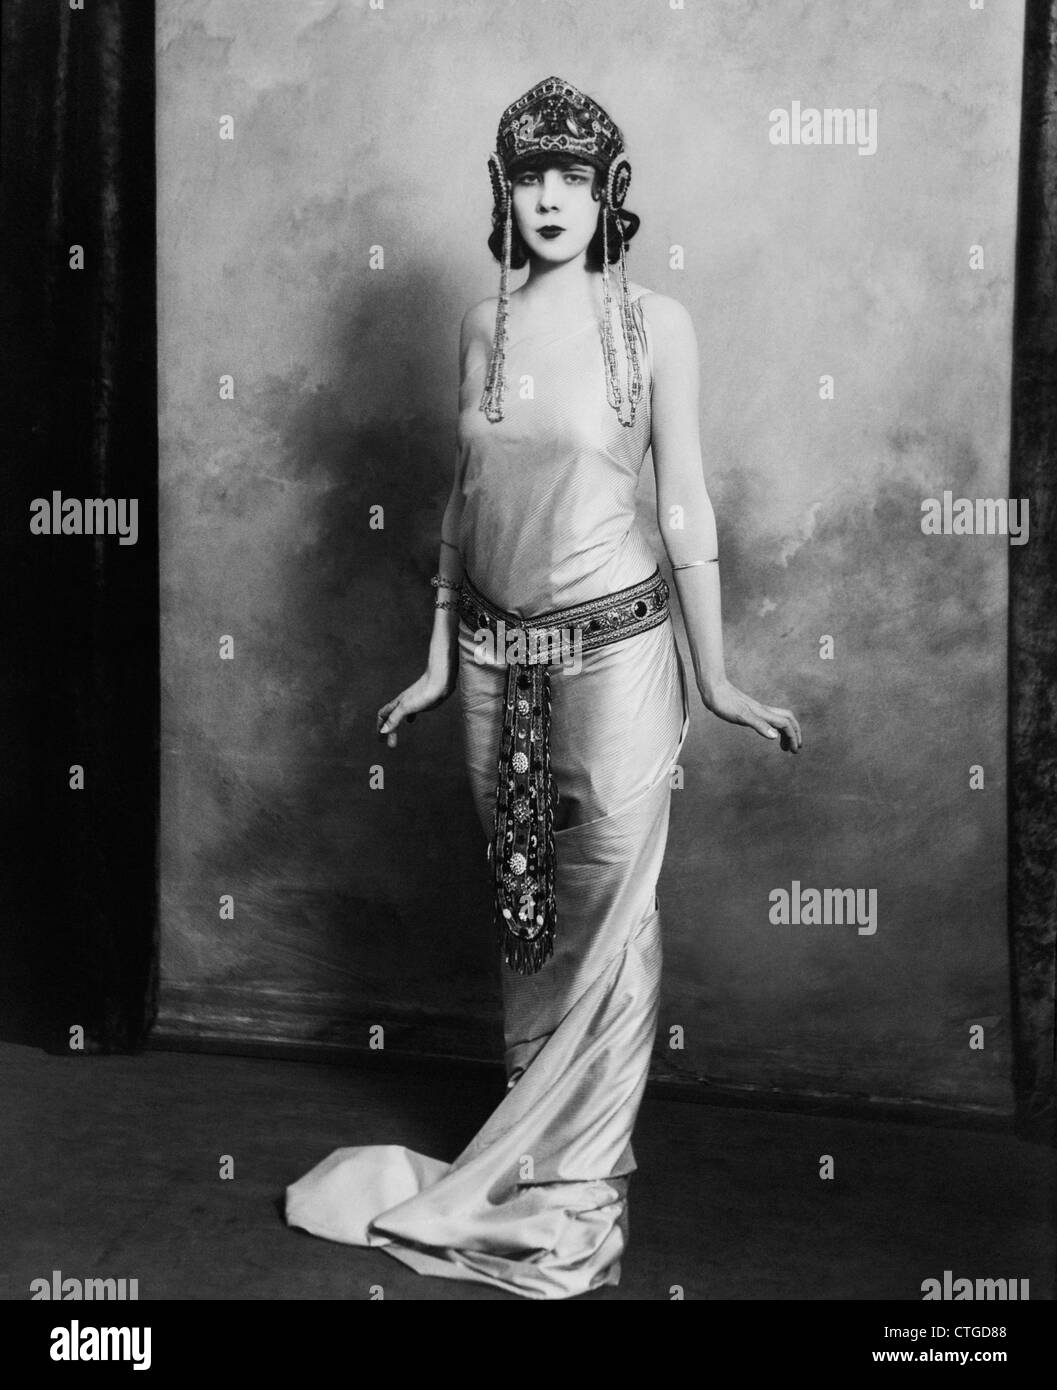 Egyptian inspired modern day style - 1920s Woman Wearing Exotic Egyptian Inspired Lame Gown Costume With Jeweled Belt Headpiece Fashion